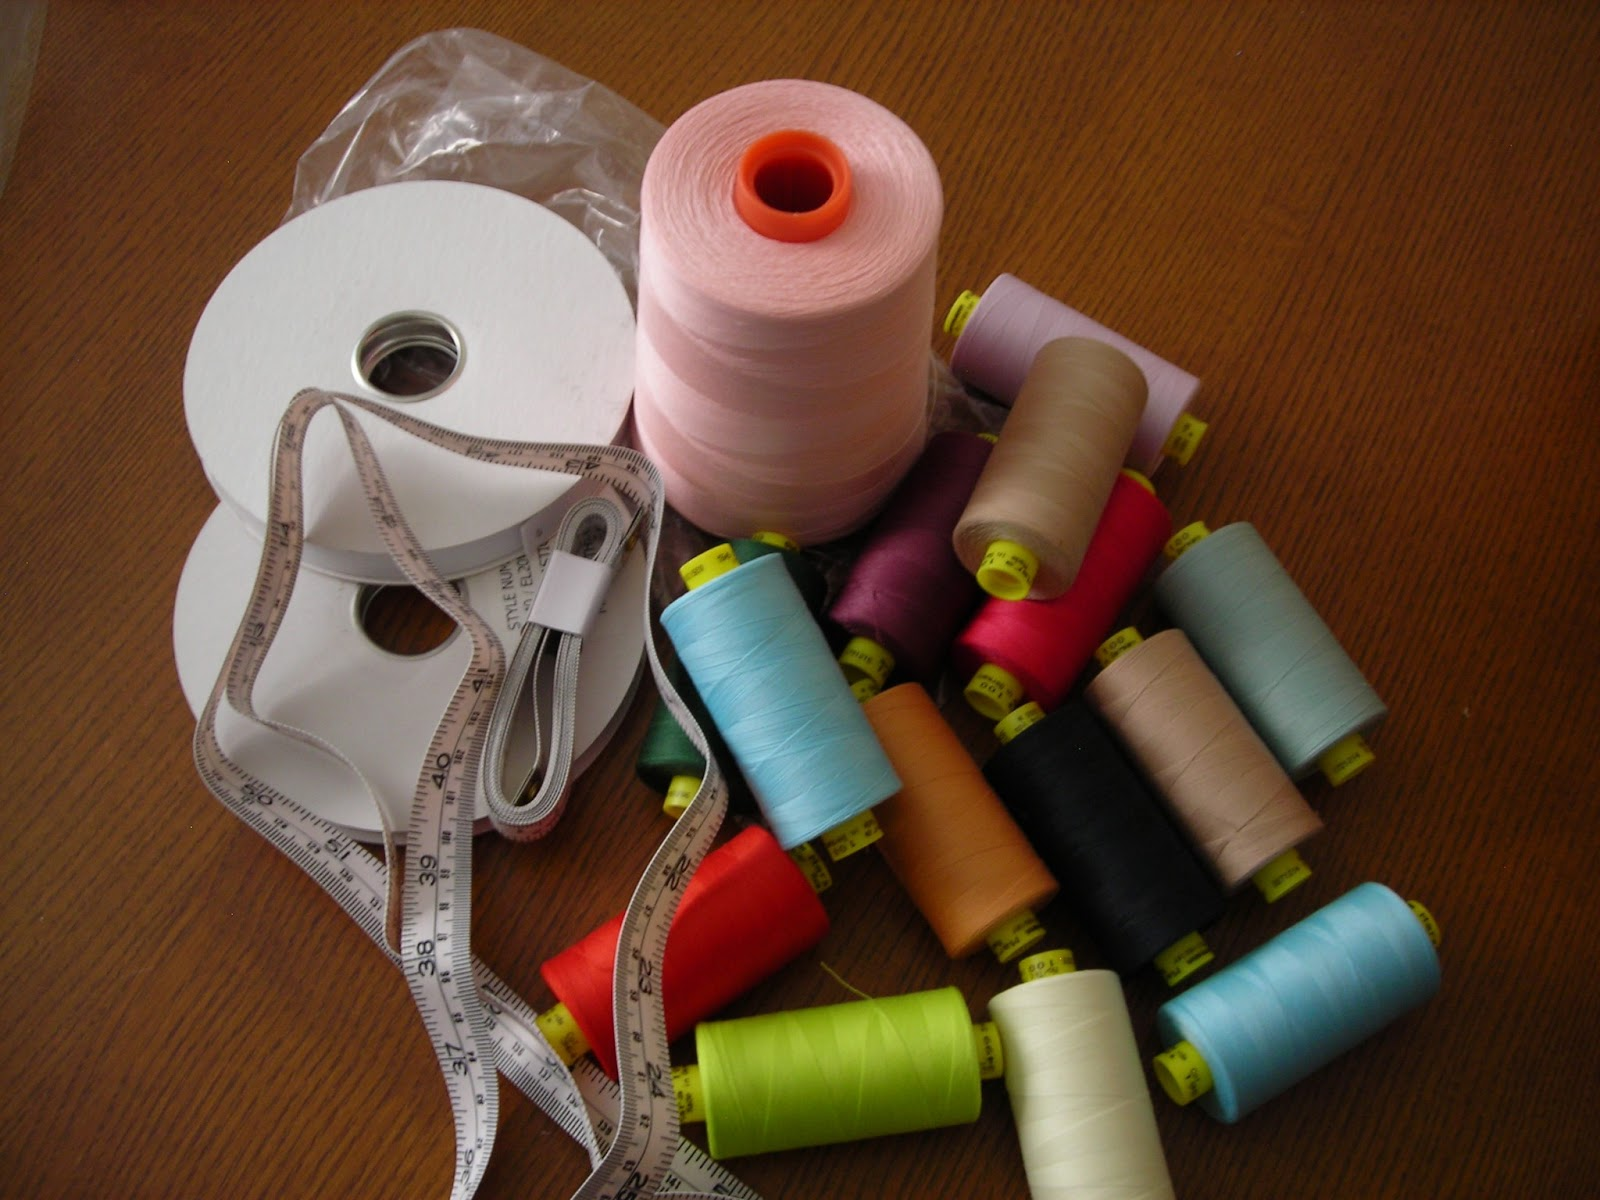 Wawak sewing supplies coupon code